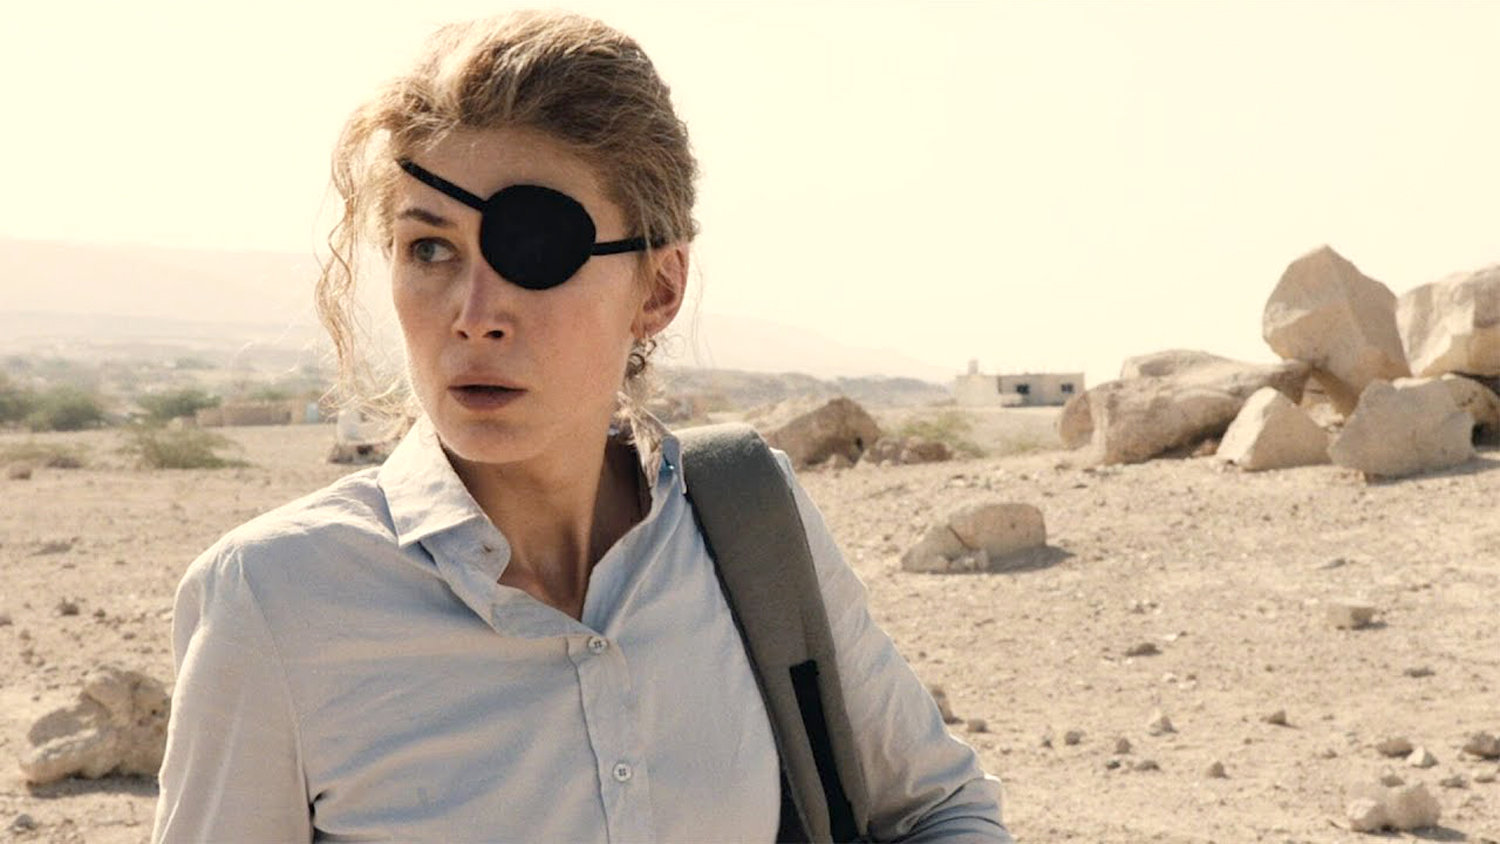 BIOPIC — Rosamund Pike as celebrated war correspondent Marie Colvin